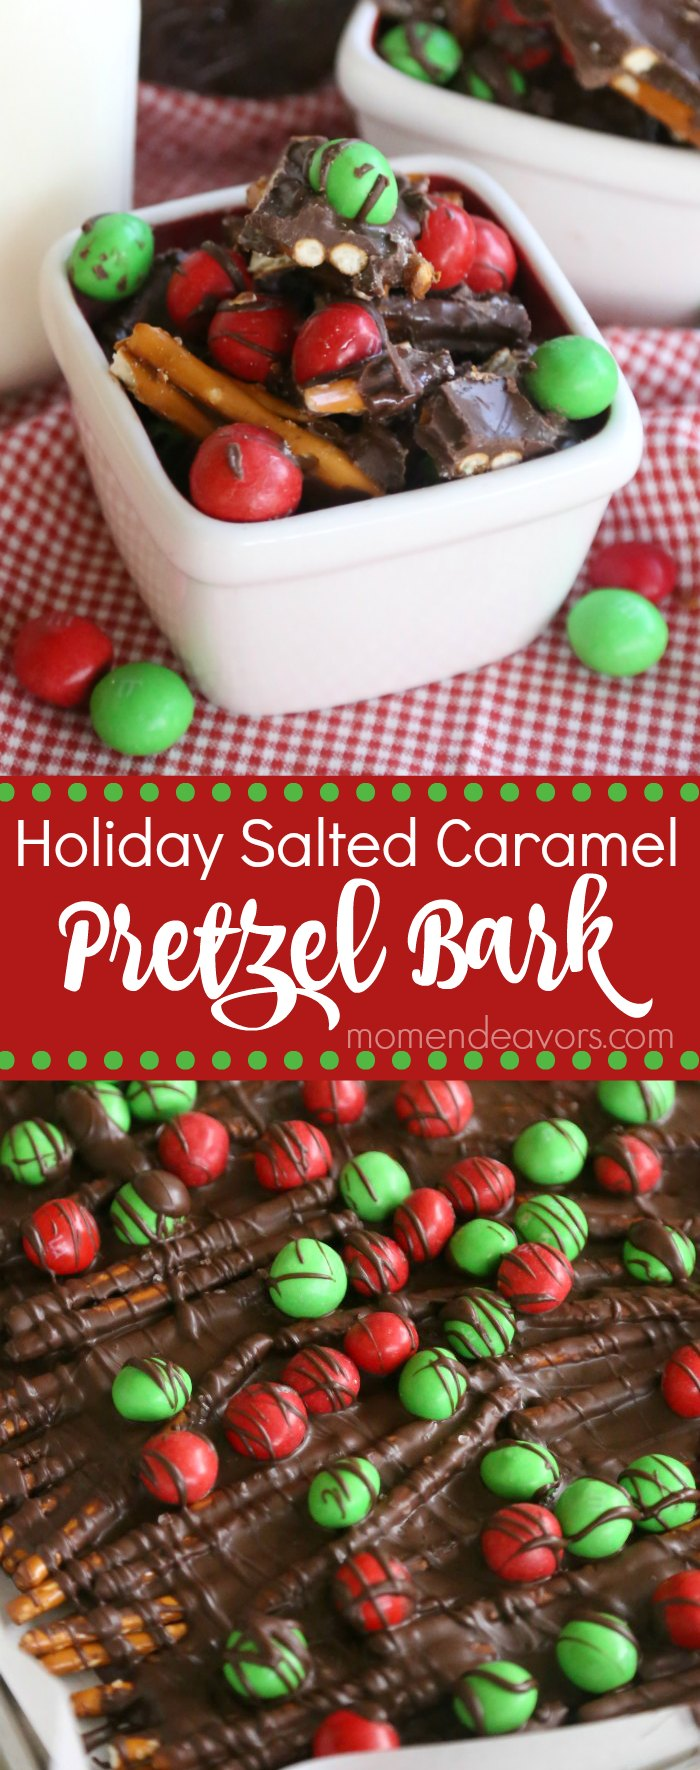 Holiday Salted Caramel Pretzel Bark Recipe